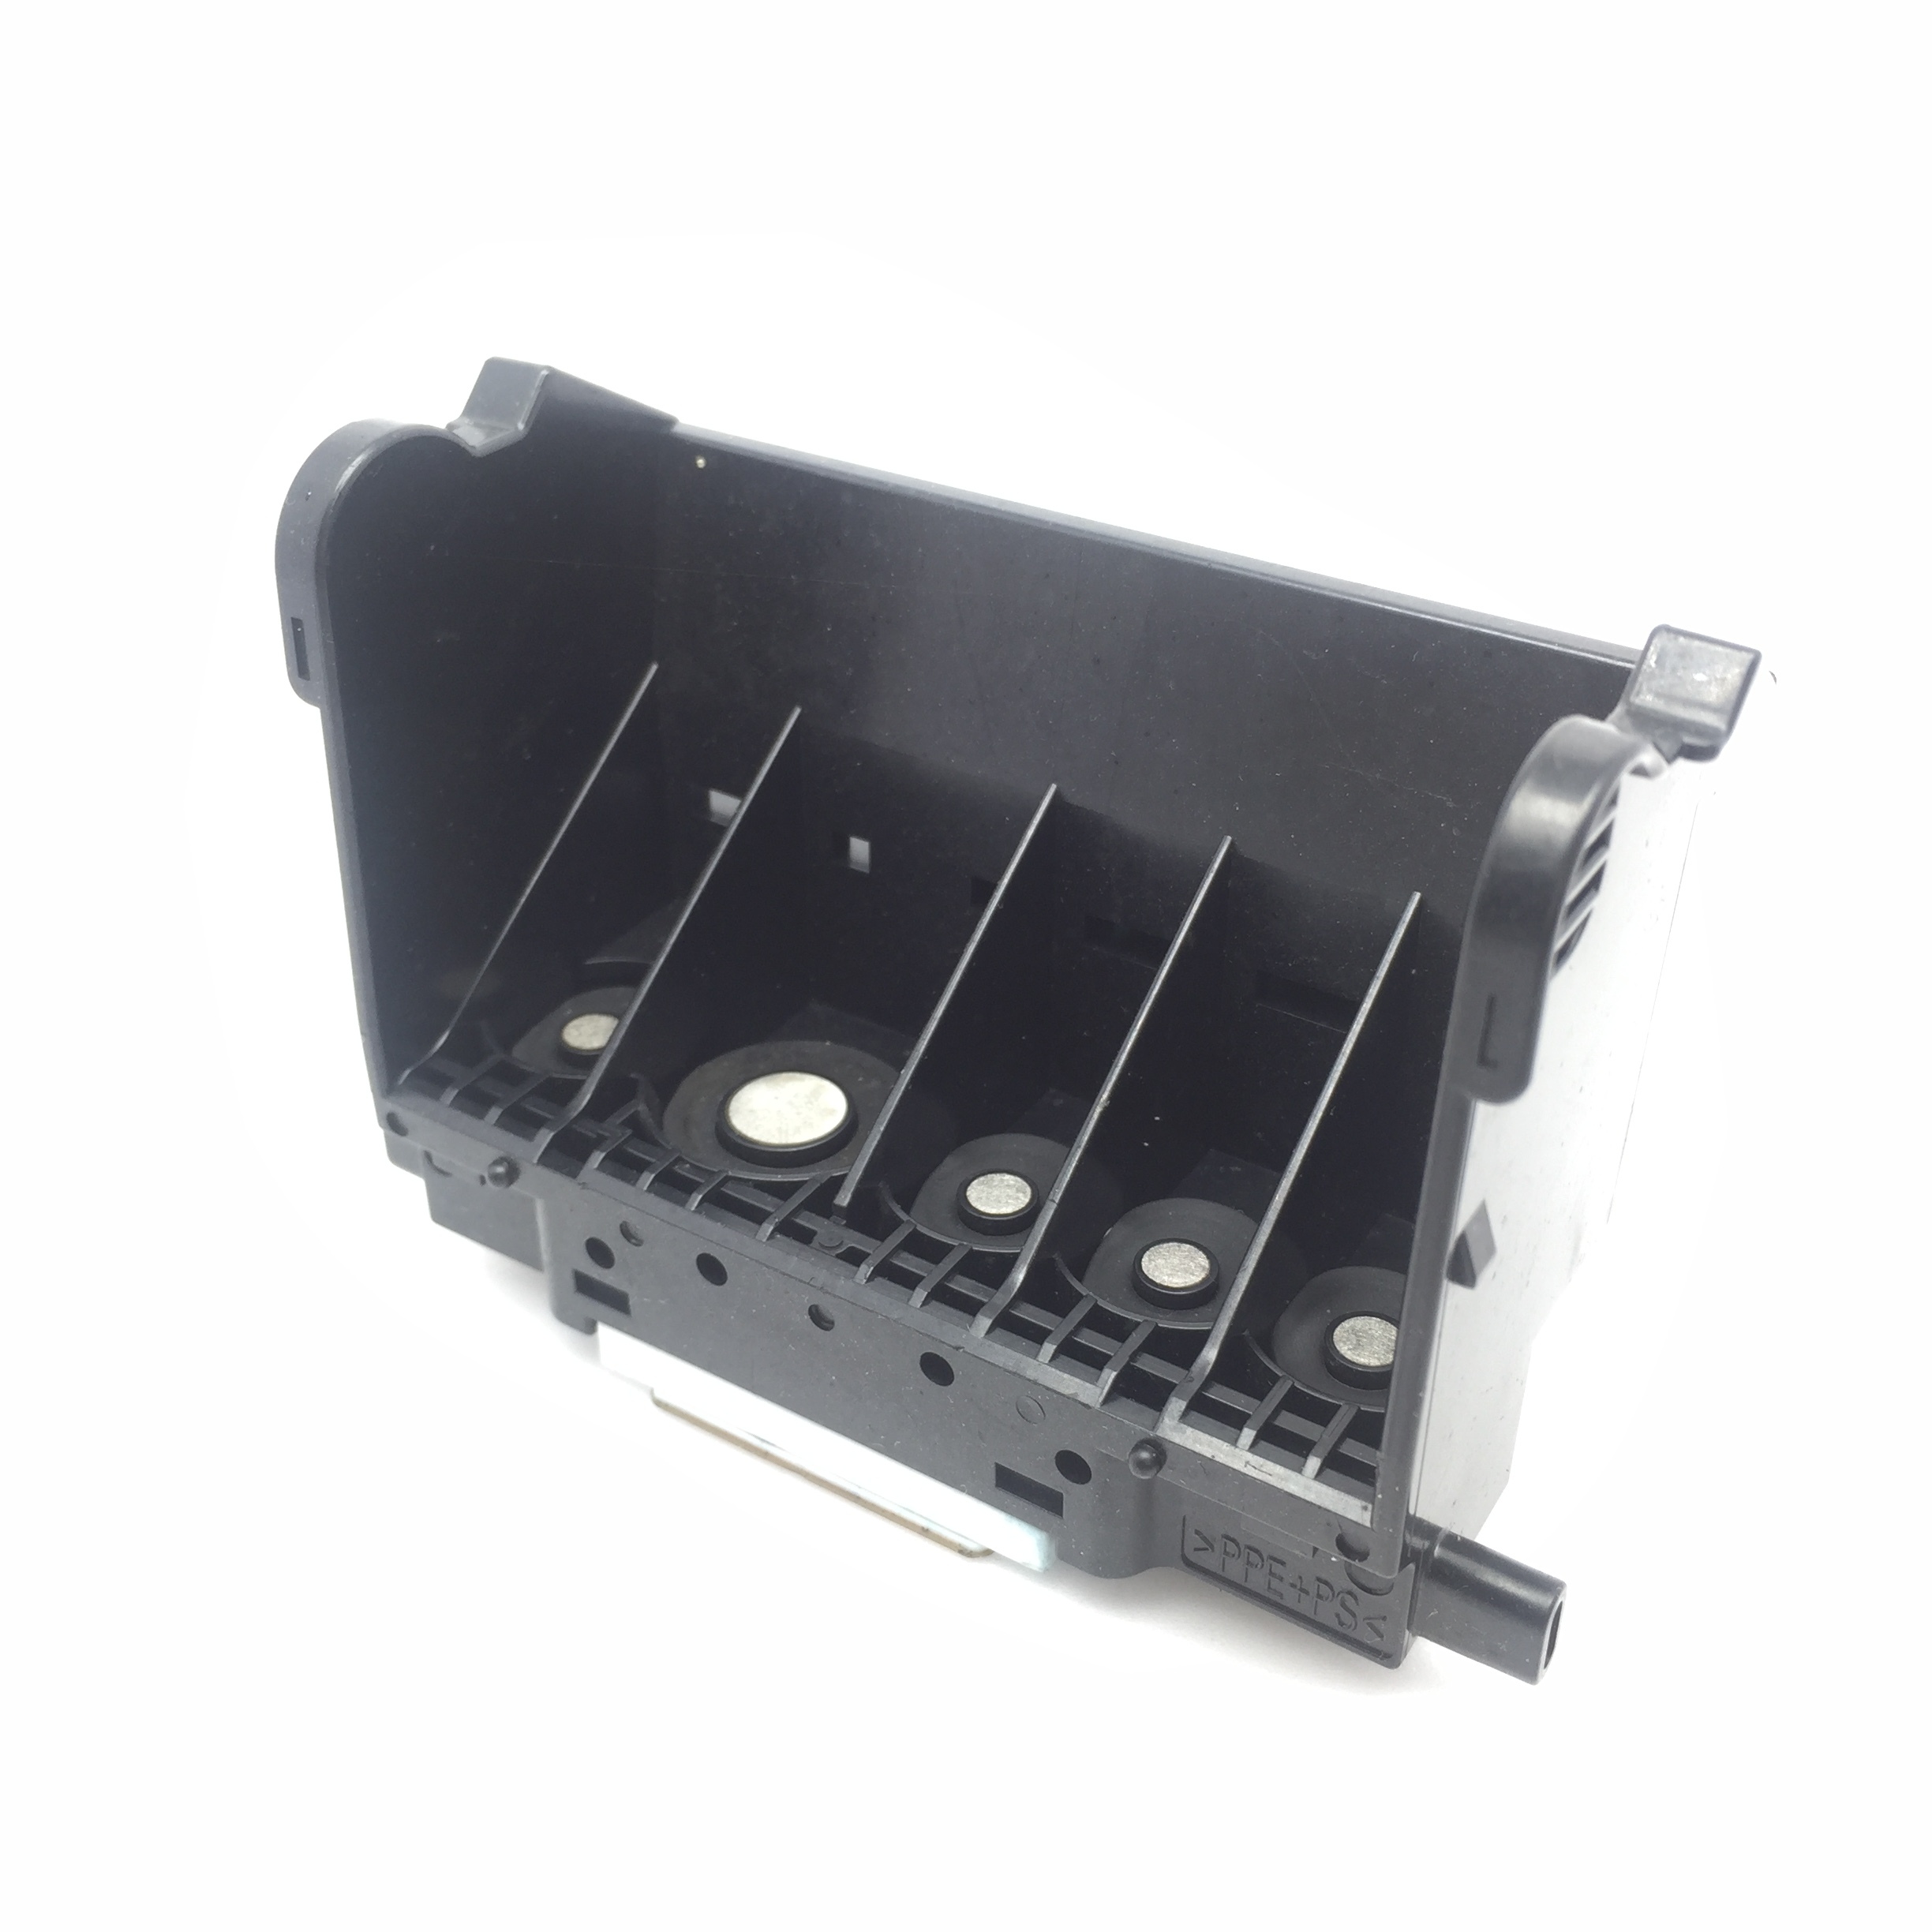 QY6-0061 FOR canon iP5200  iP4300 MP800 MP830 MP600  PrintHead new original print head qy6 0061 00 printhead for canon ip4300 ip5200 ip5200r mp600 mp600r mp800 mp800r mp830 plotter